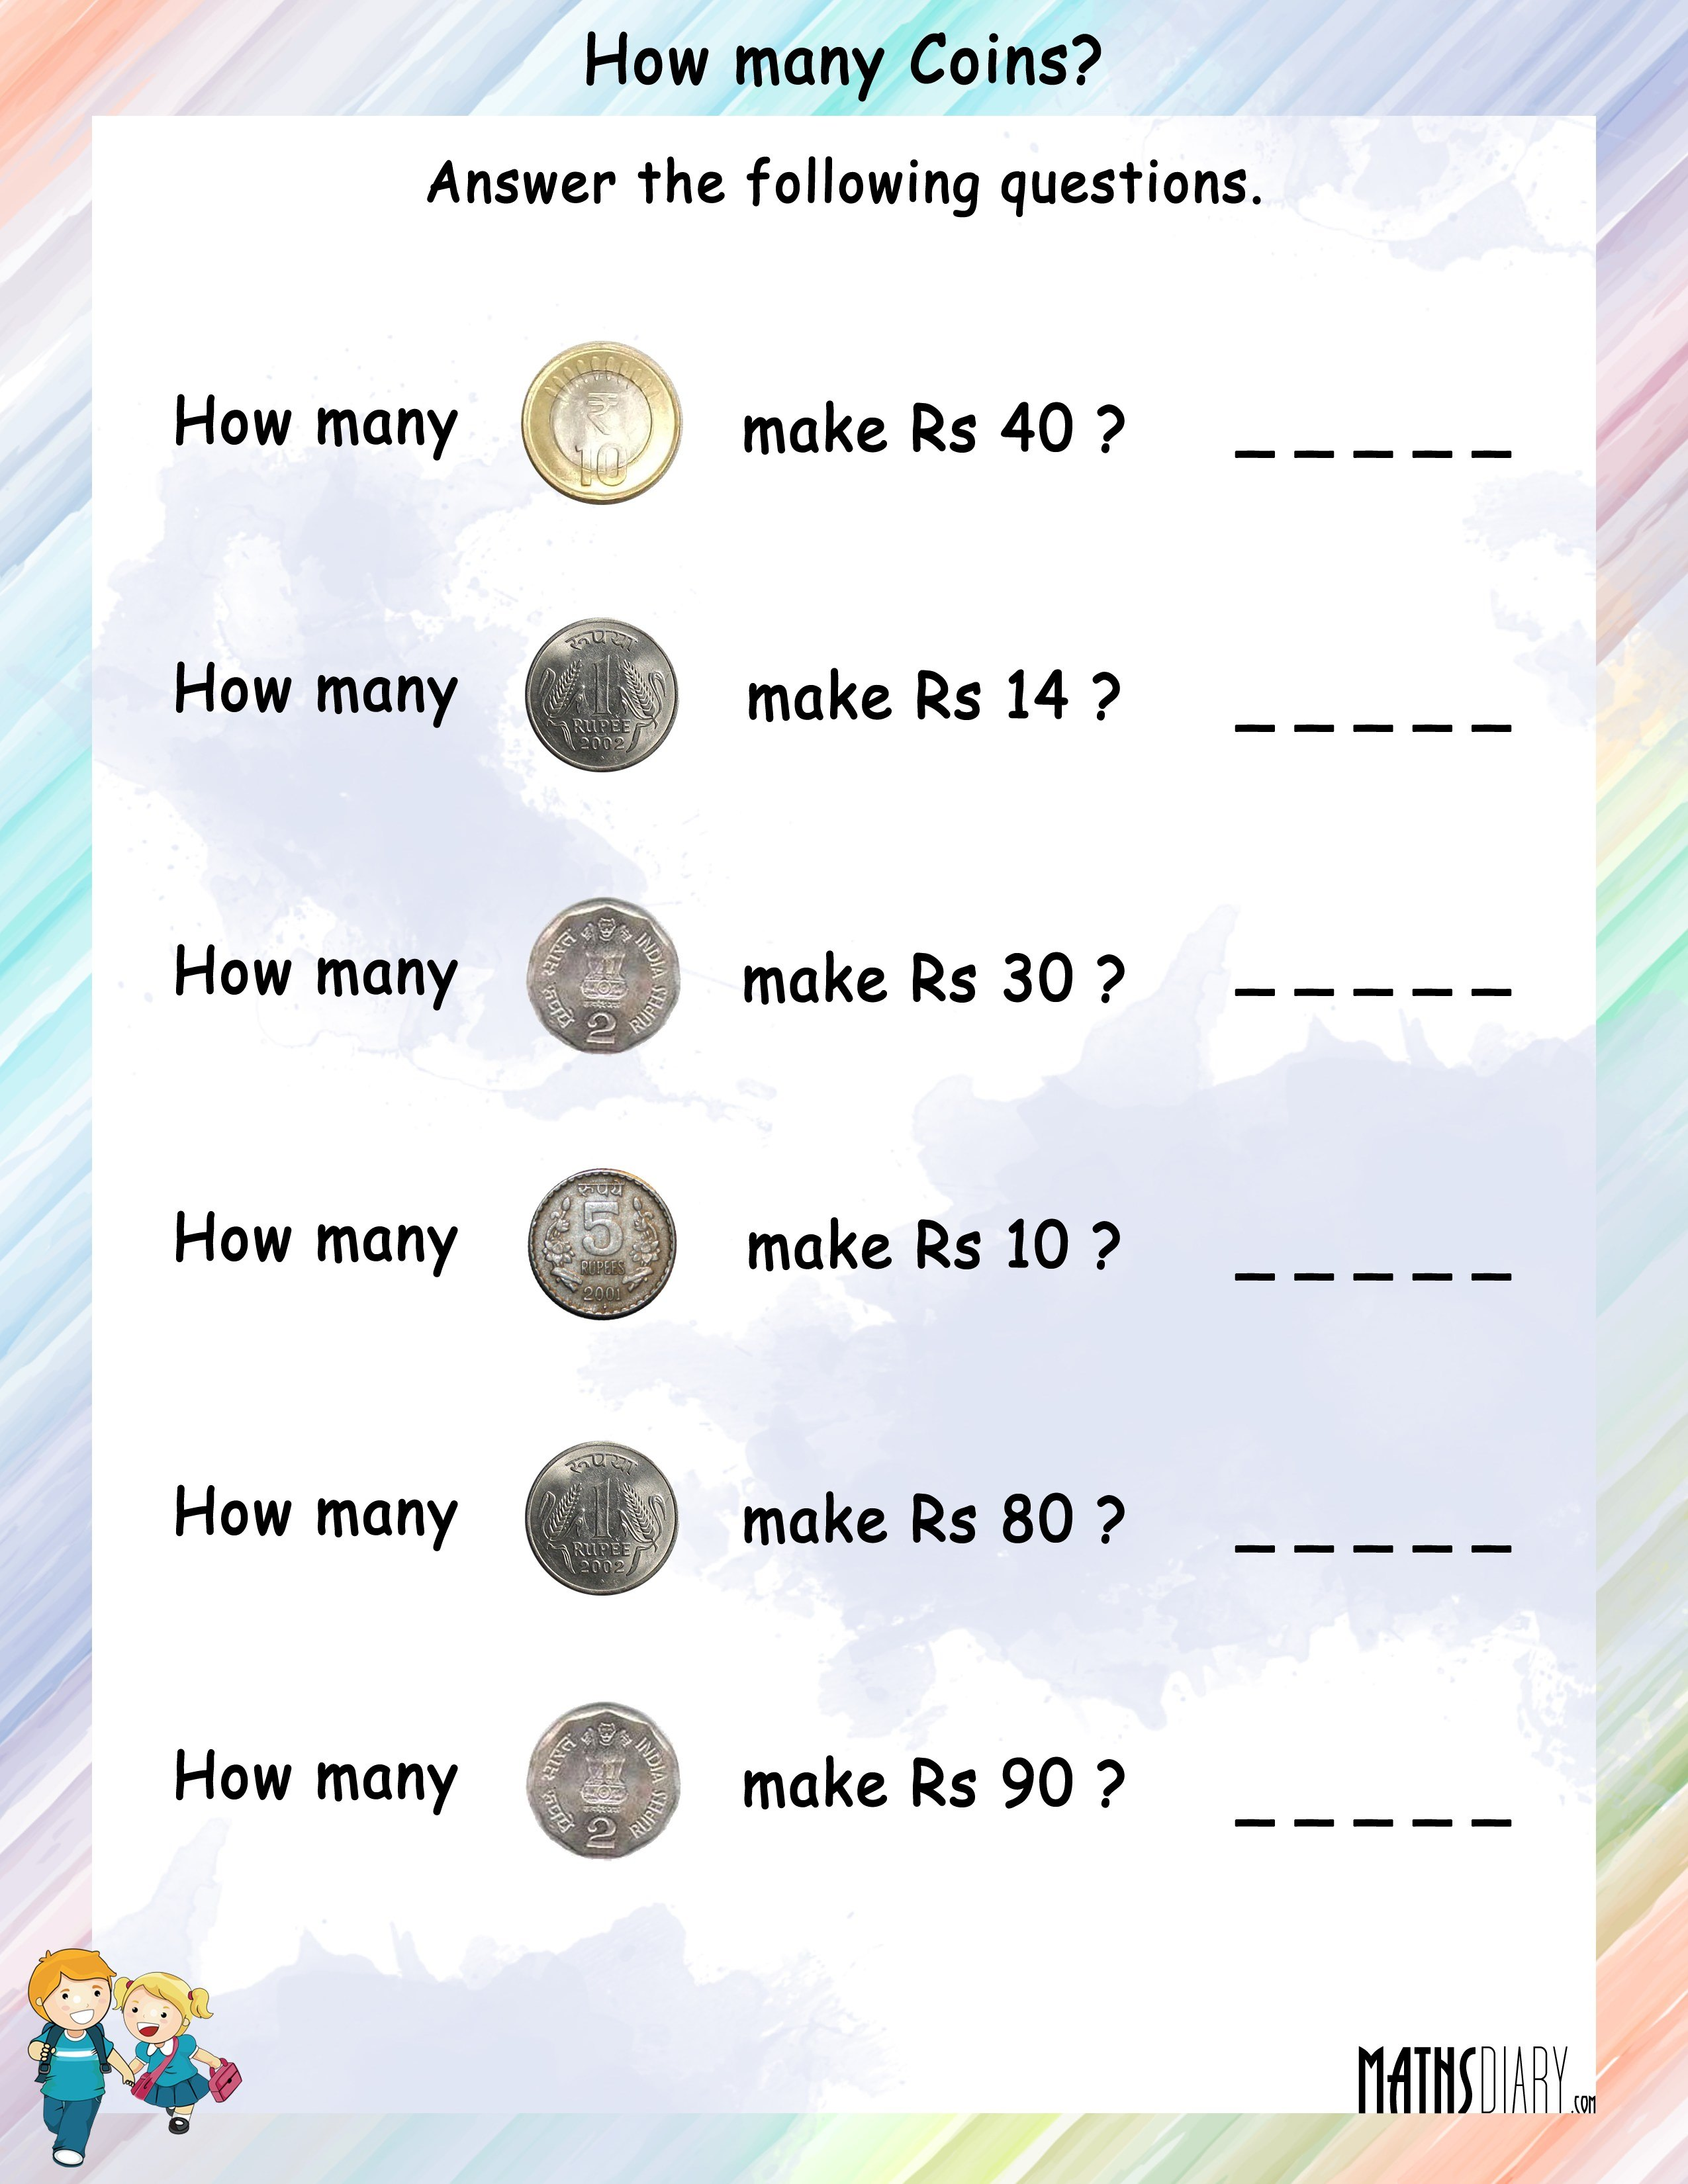 How Many Coins Will Be Needed To Make The Given Rupees